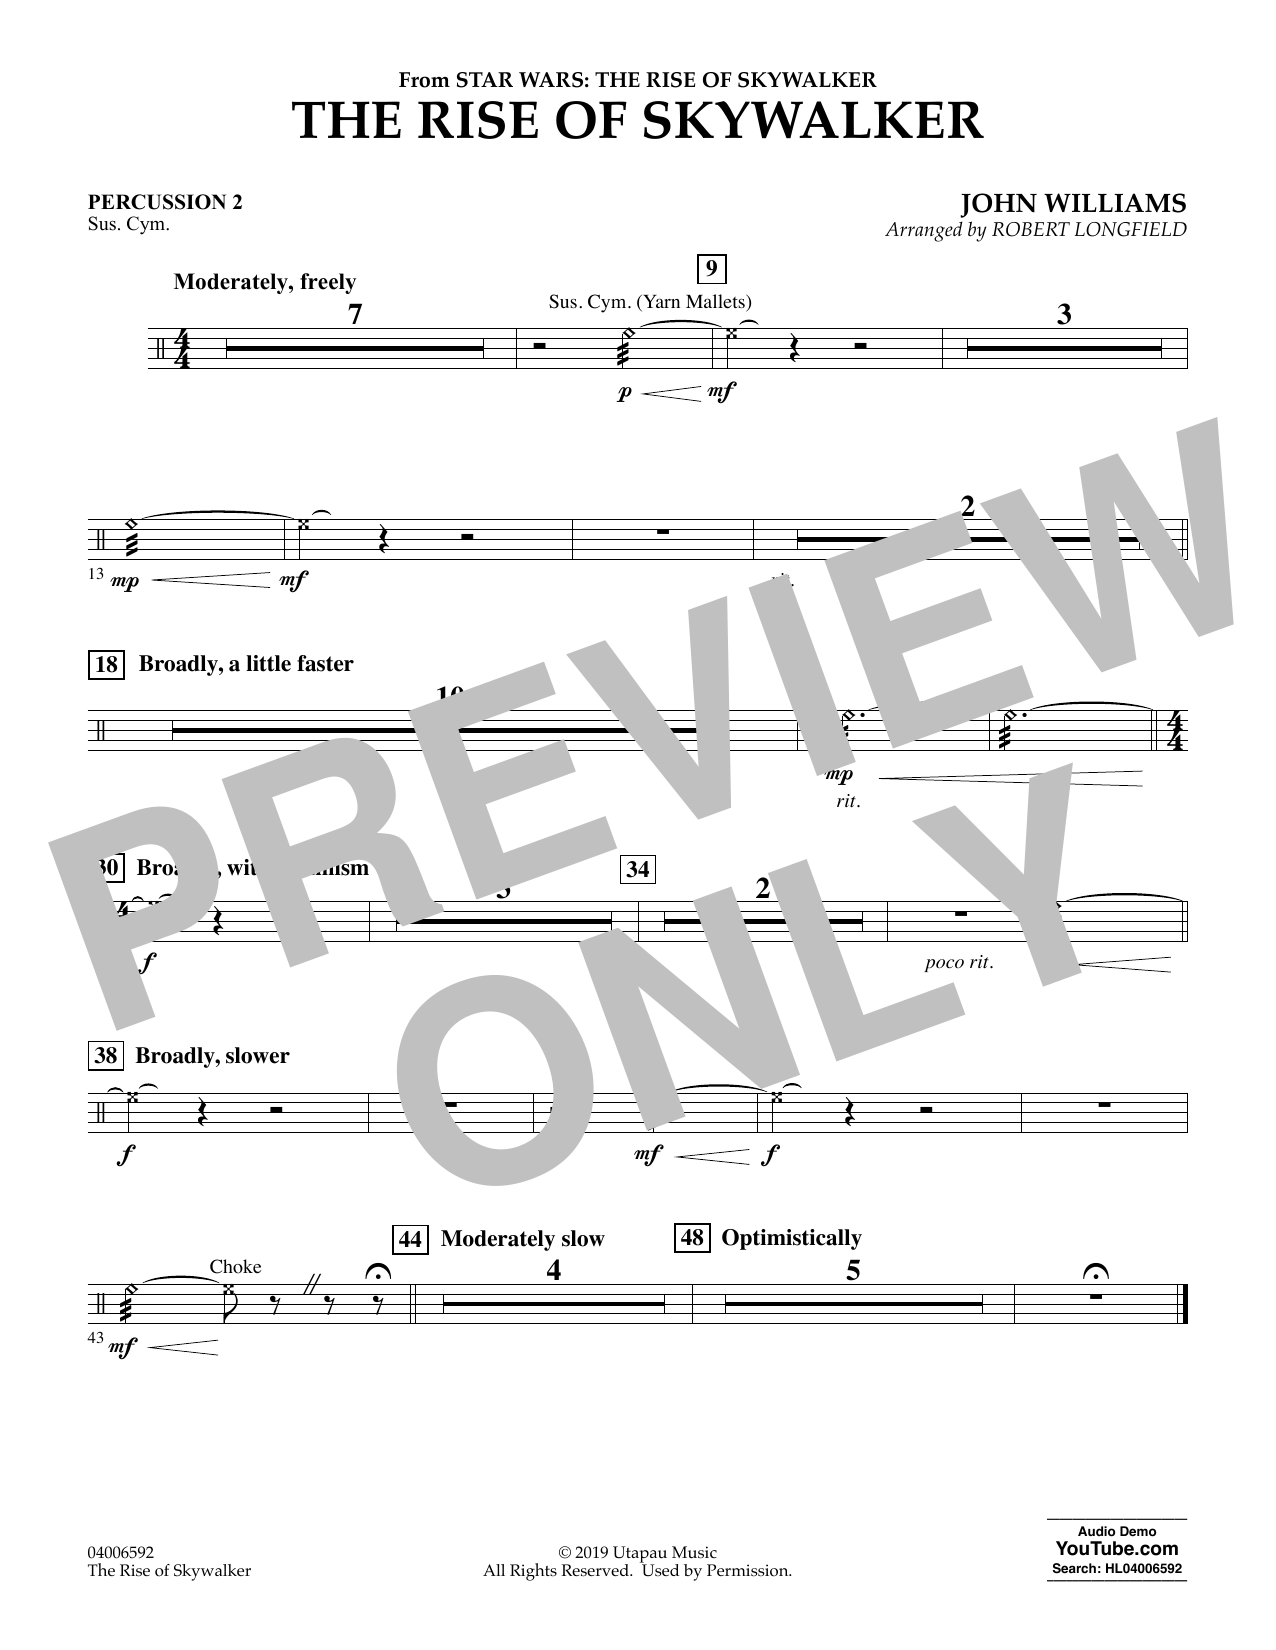 John Williams The Rise Of Skywalker From Star Wars The Rise Of Skywalker Percussion 2 Sheet Music Download Pdf Score 454613